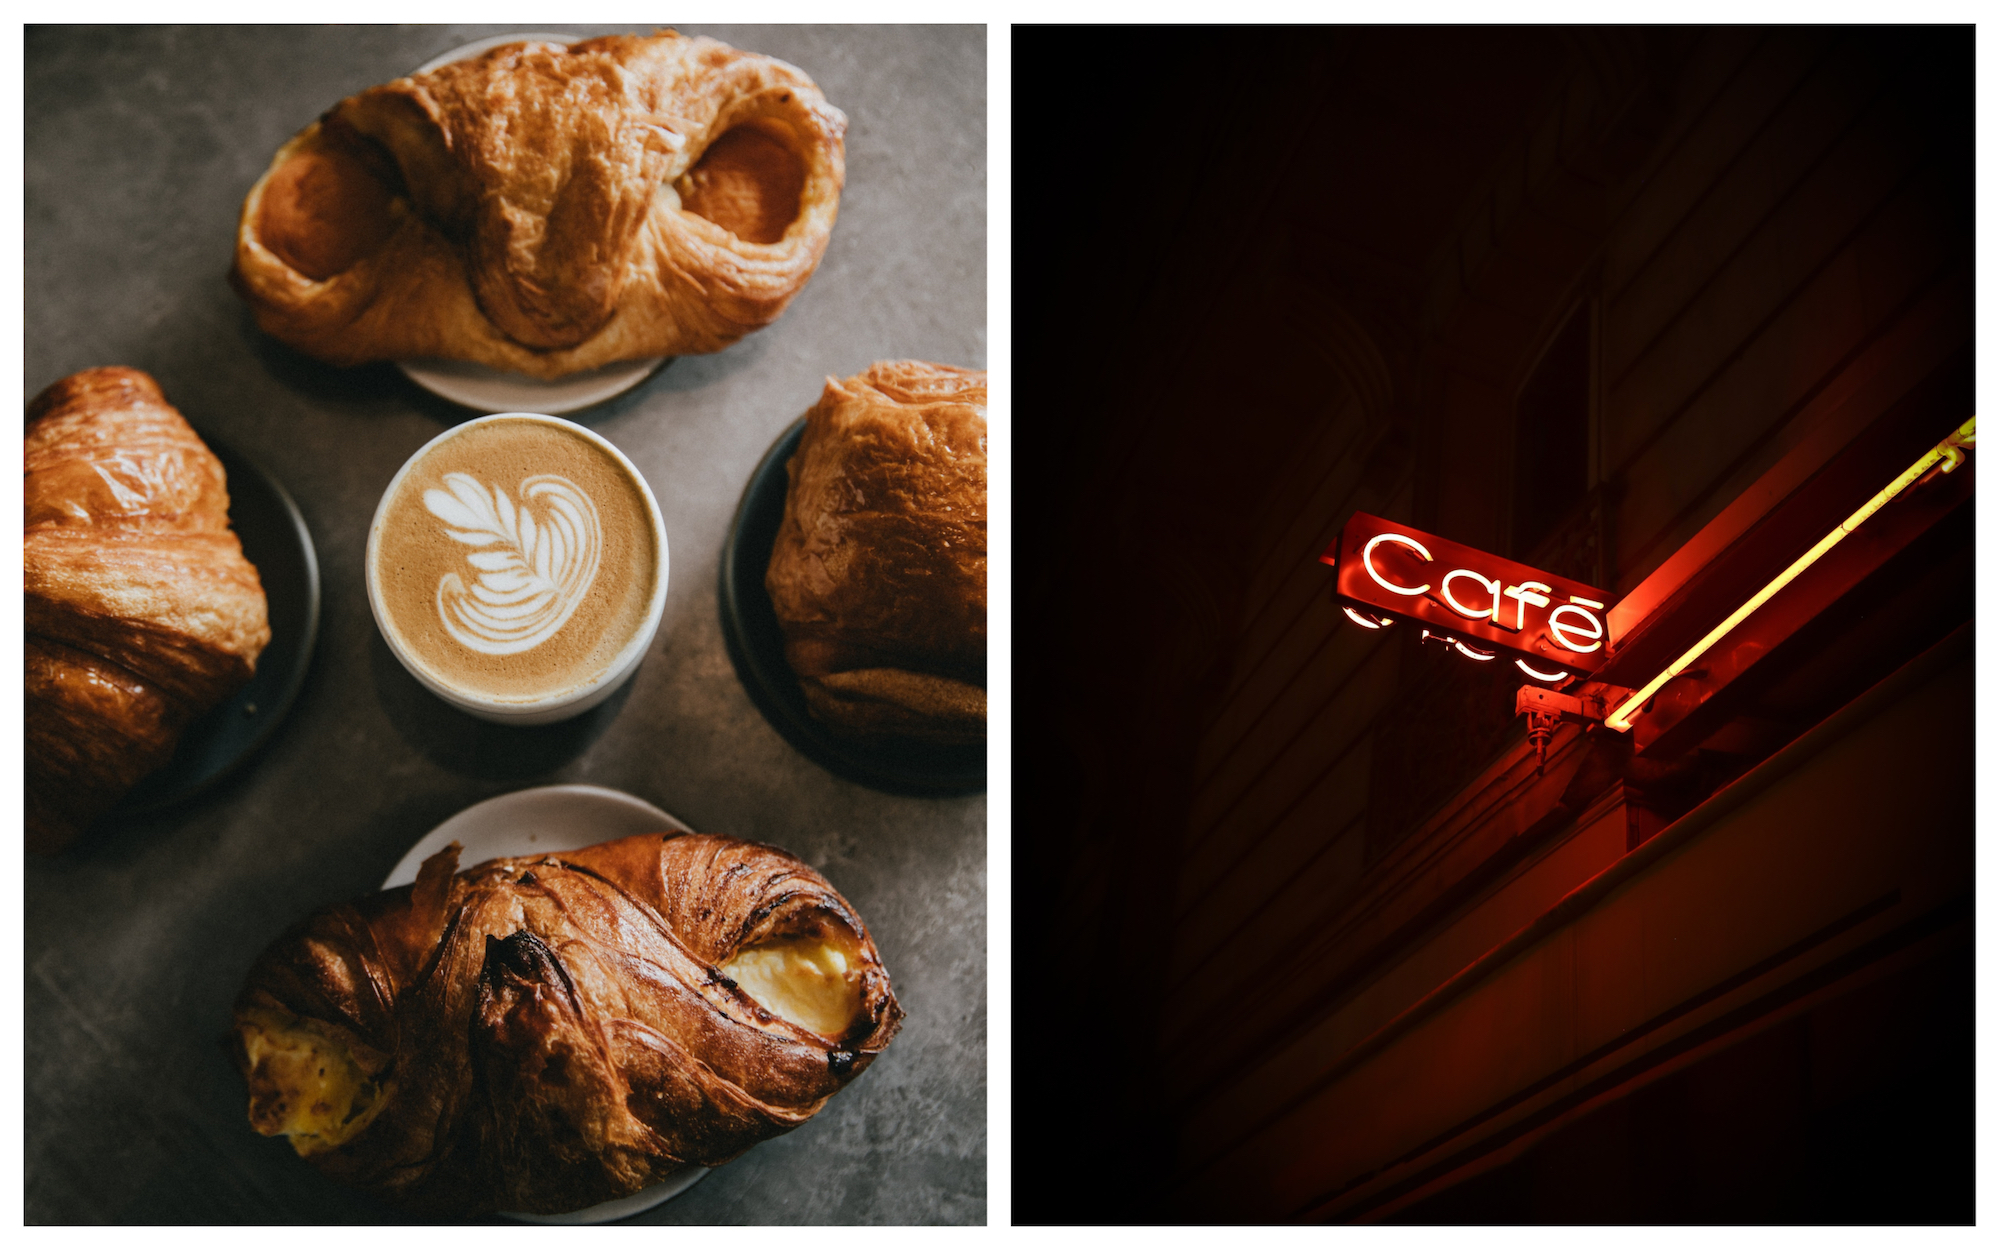 Cafés in France usually have croissants and pains au chocolat for breakfast (left). A red neon 'café' sign in Paris (right).